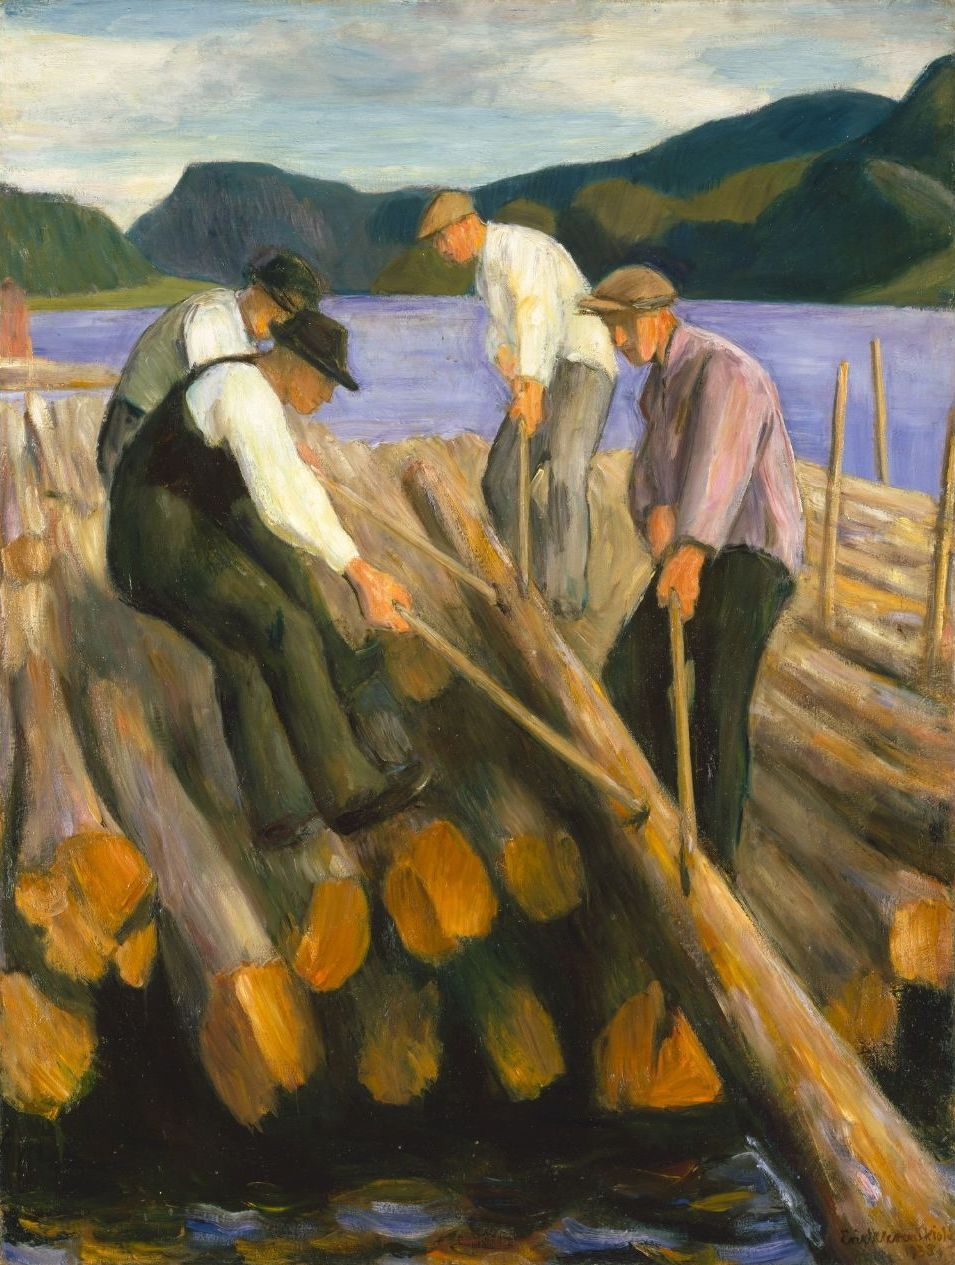 Erik Werenskiold's Men Working on a Timber Boom